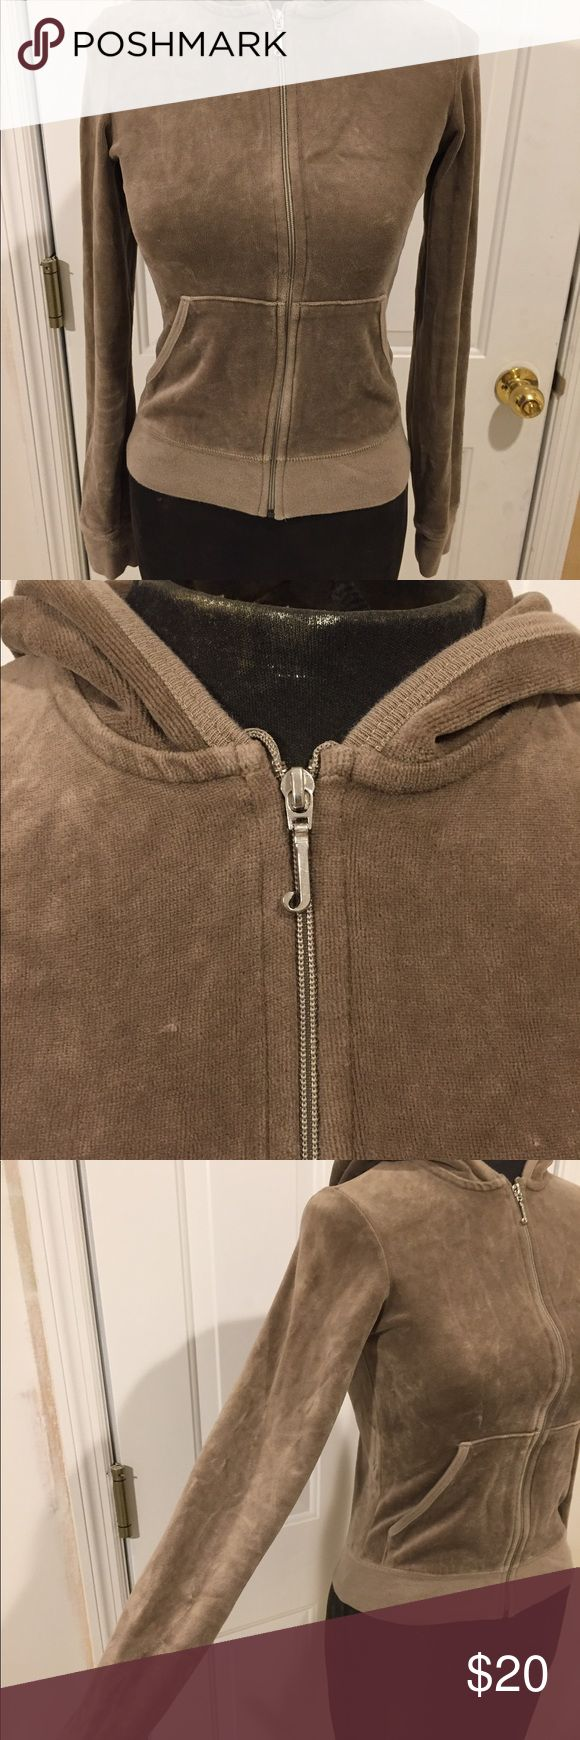 Juicy Couture Light Brown Zip-Up Hoodie Juicy Couture zip up velour hoodie, in good condition and comes from a smoke free, pet free home! Juicy Couture Sweaters